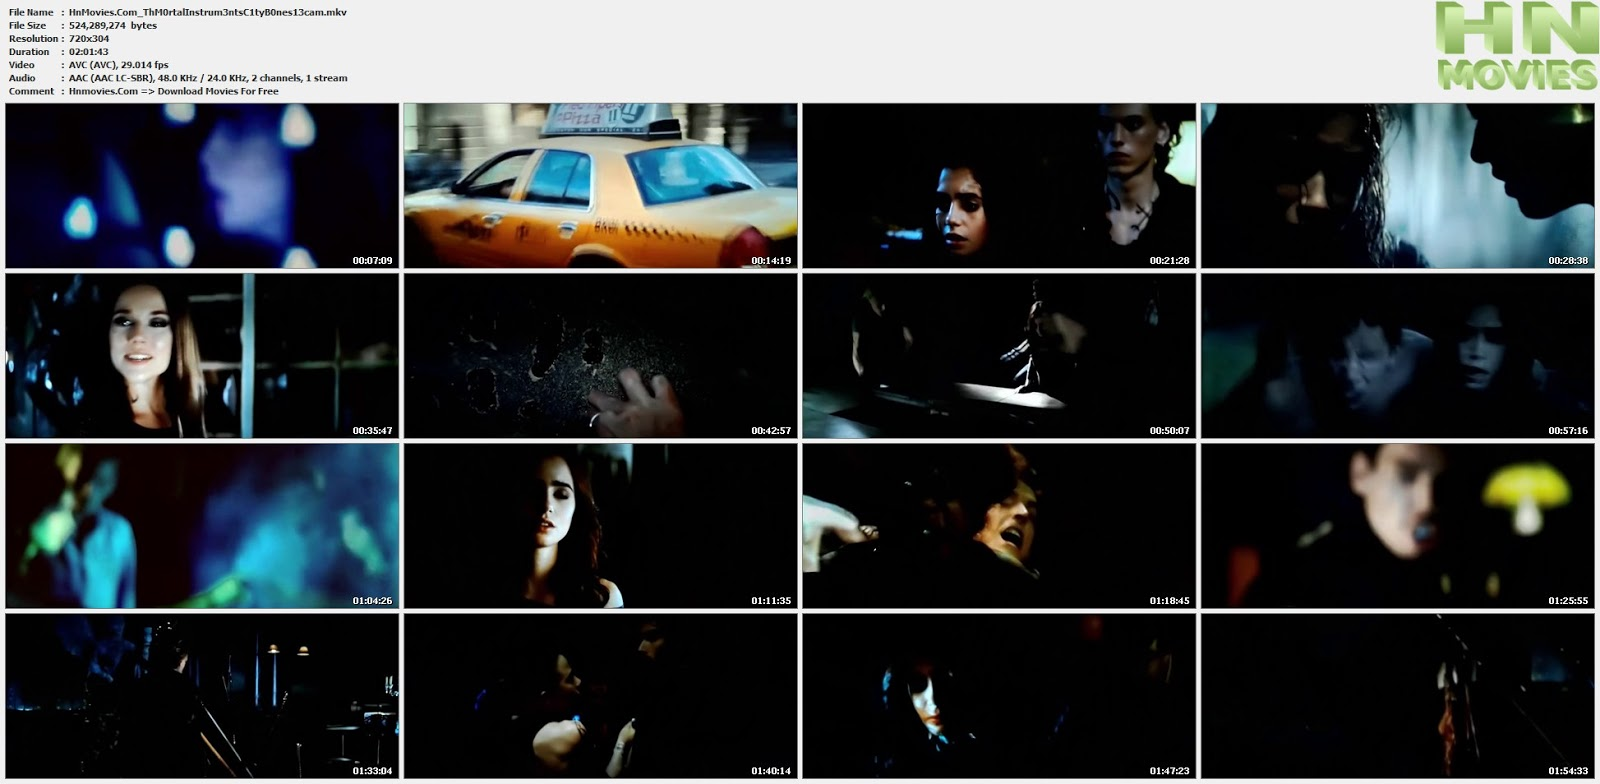 movie screenshot of The Mortal Instruments: City of Bones fdmovie.com